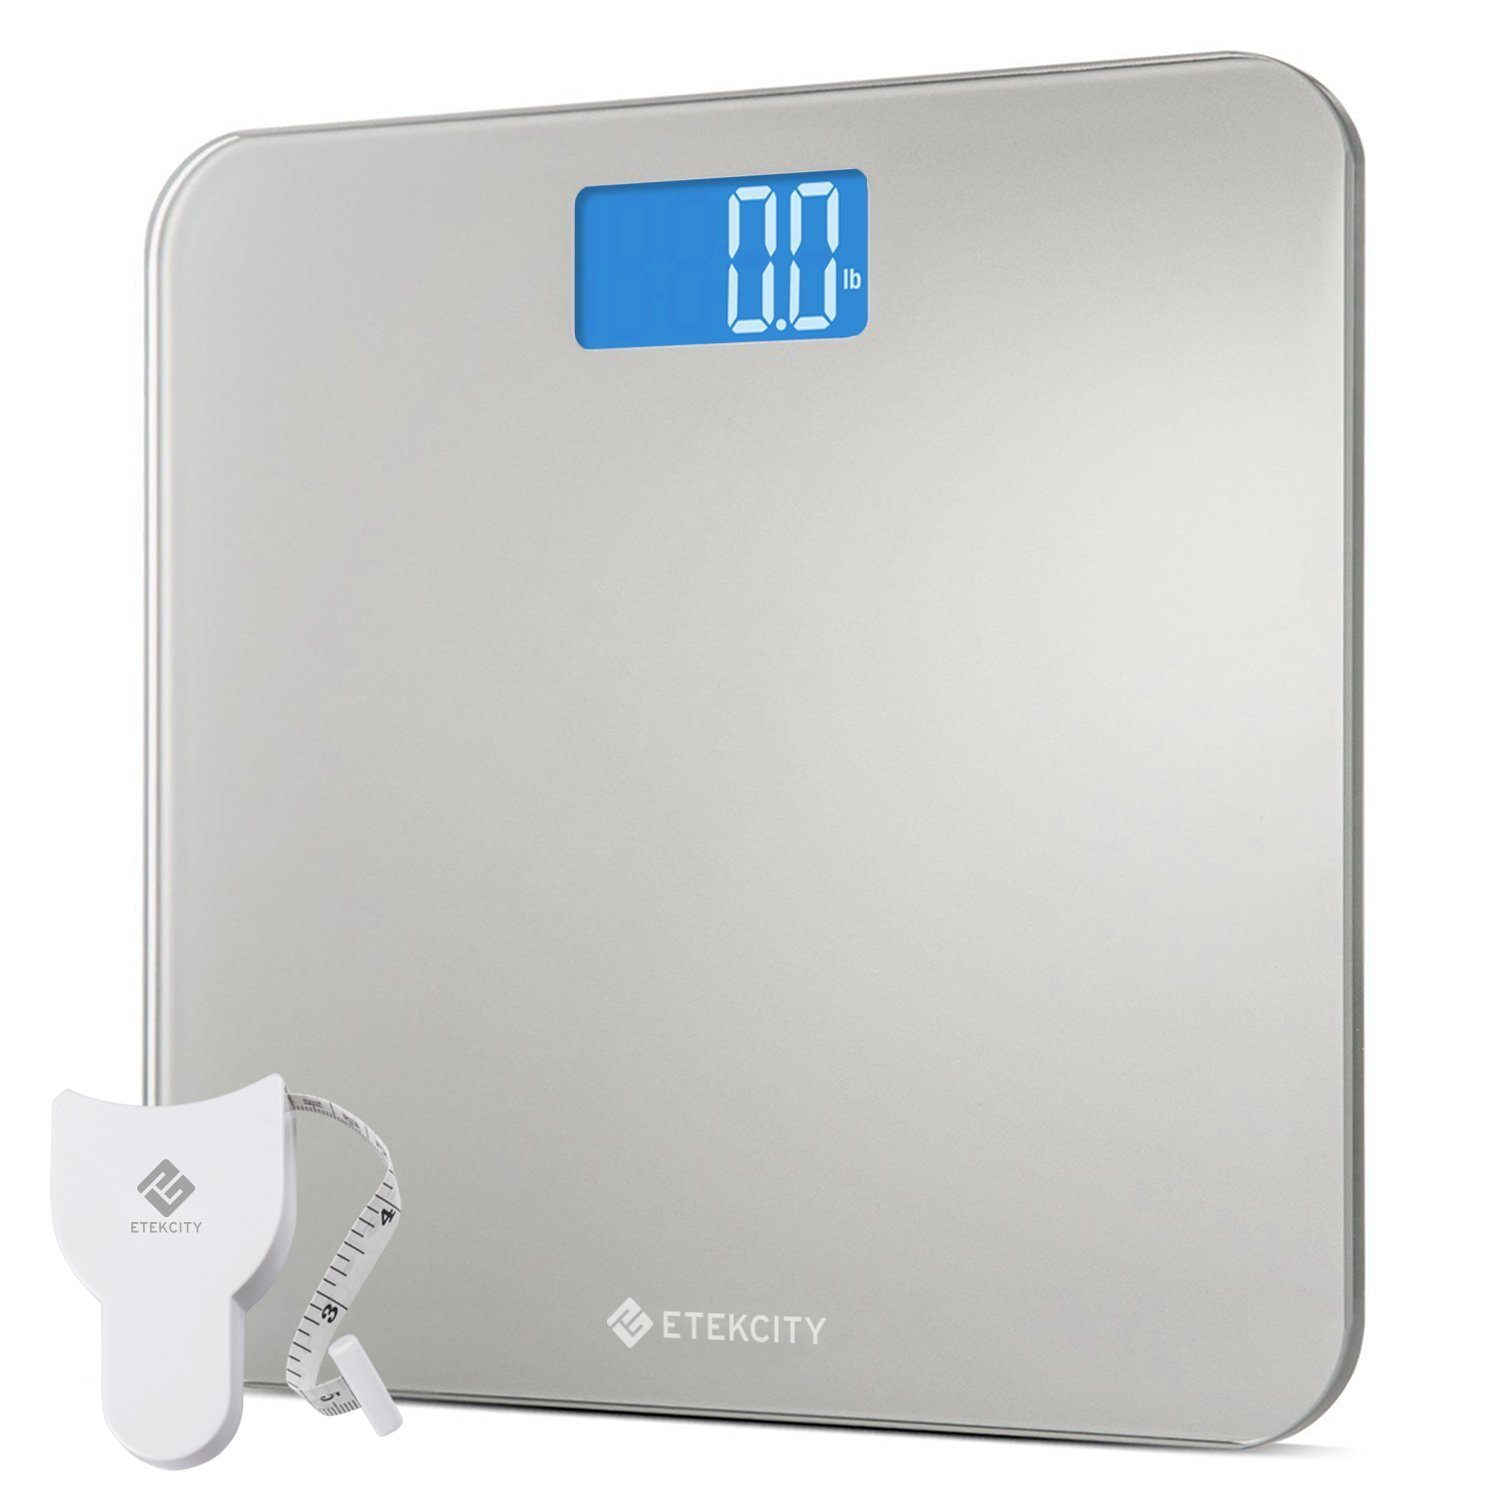 Etekcity High Precision Digital Bathroom Scale, Body Weight Scales with Body Tape Measure and Round Corner Design, Large Blue LCD Backlight Display, 400 pounds by Etekcity